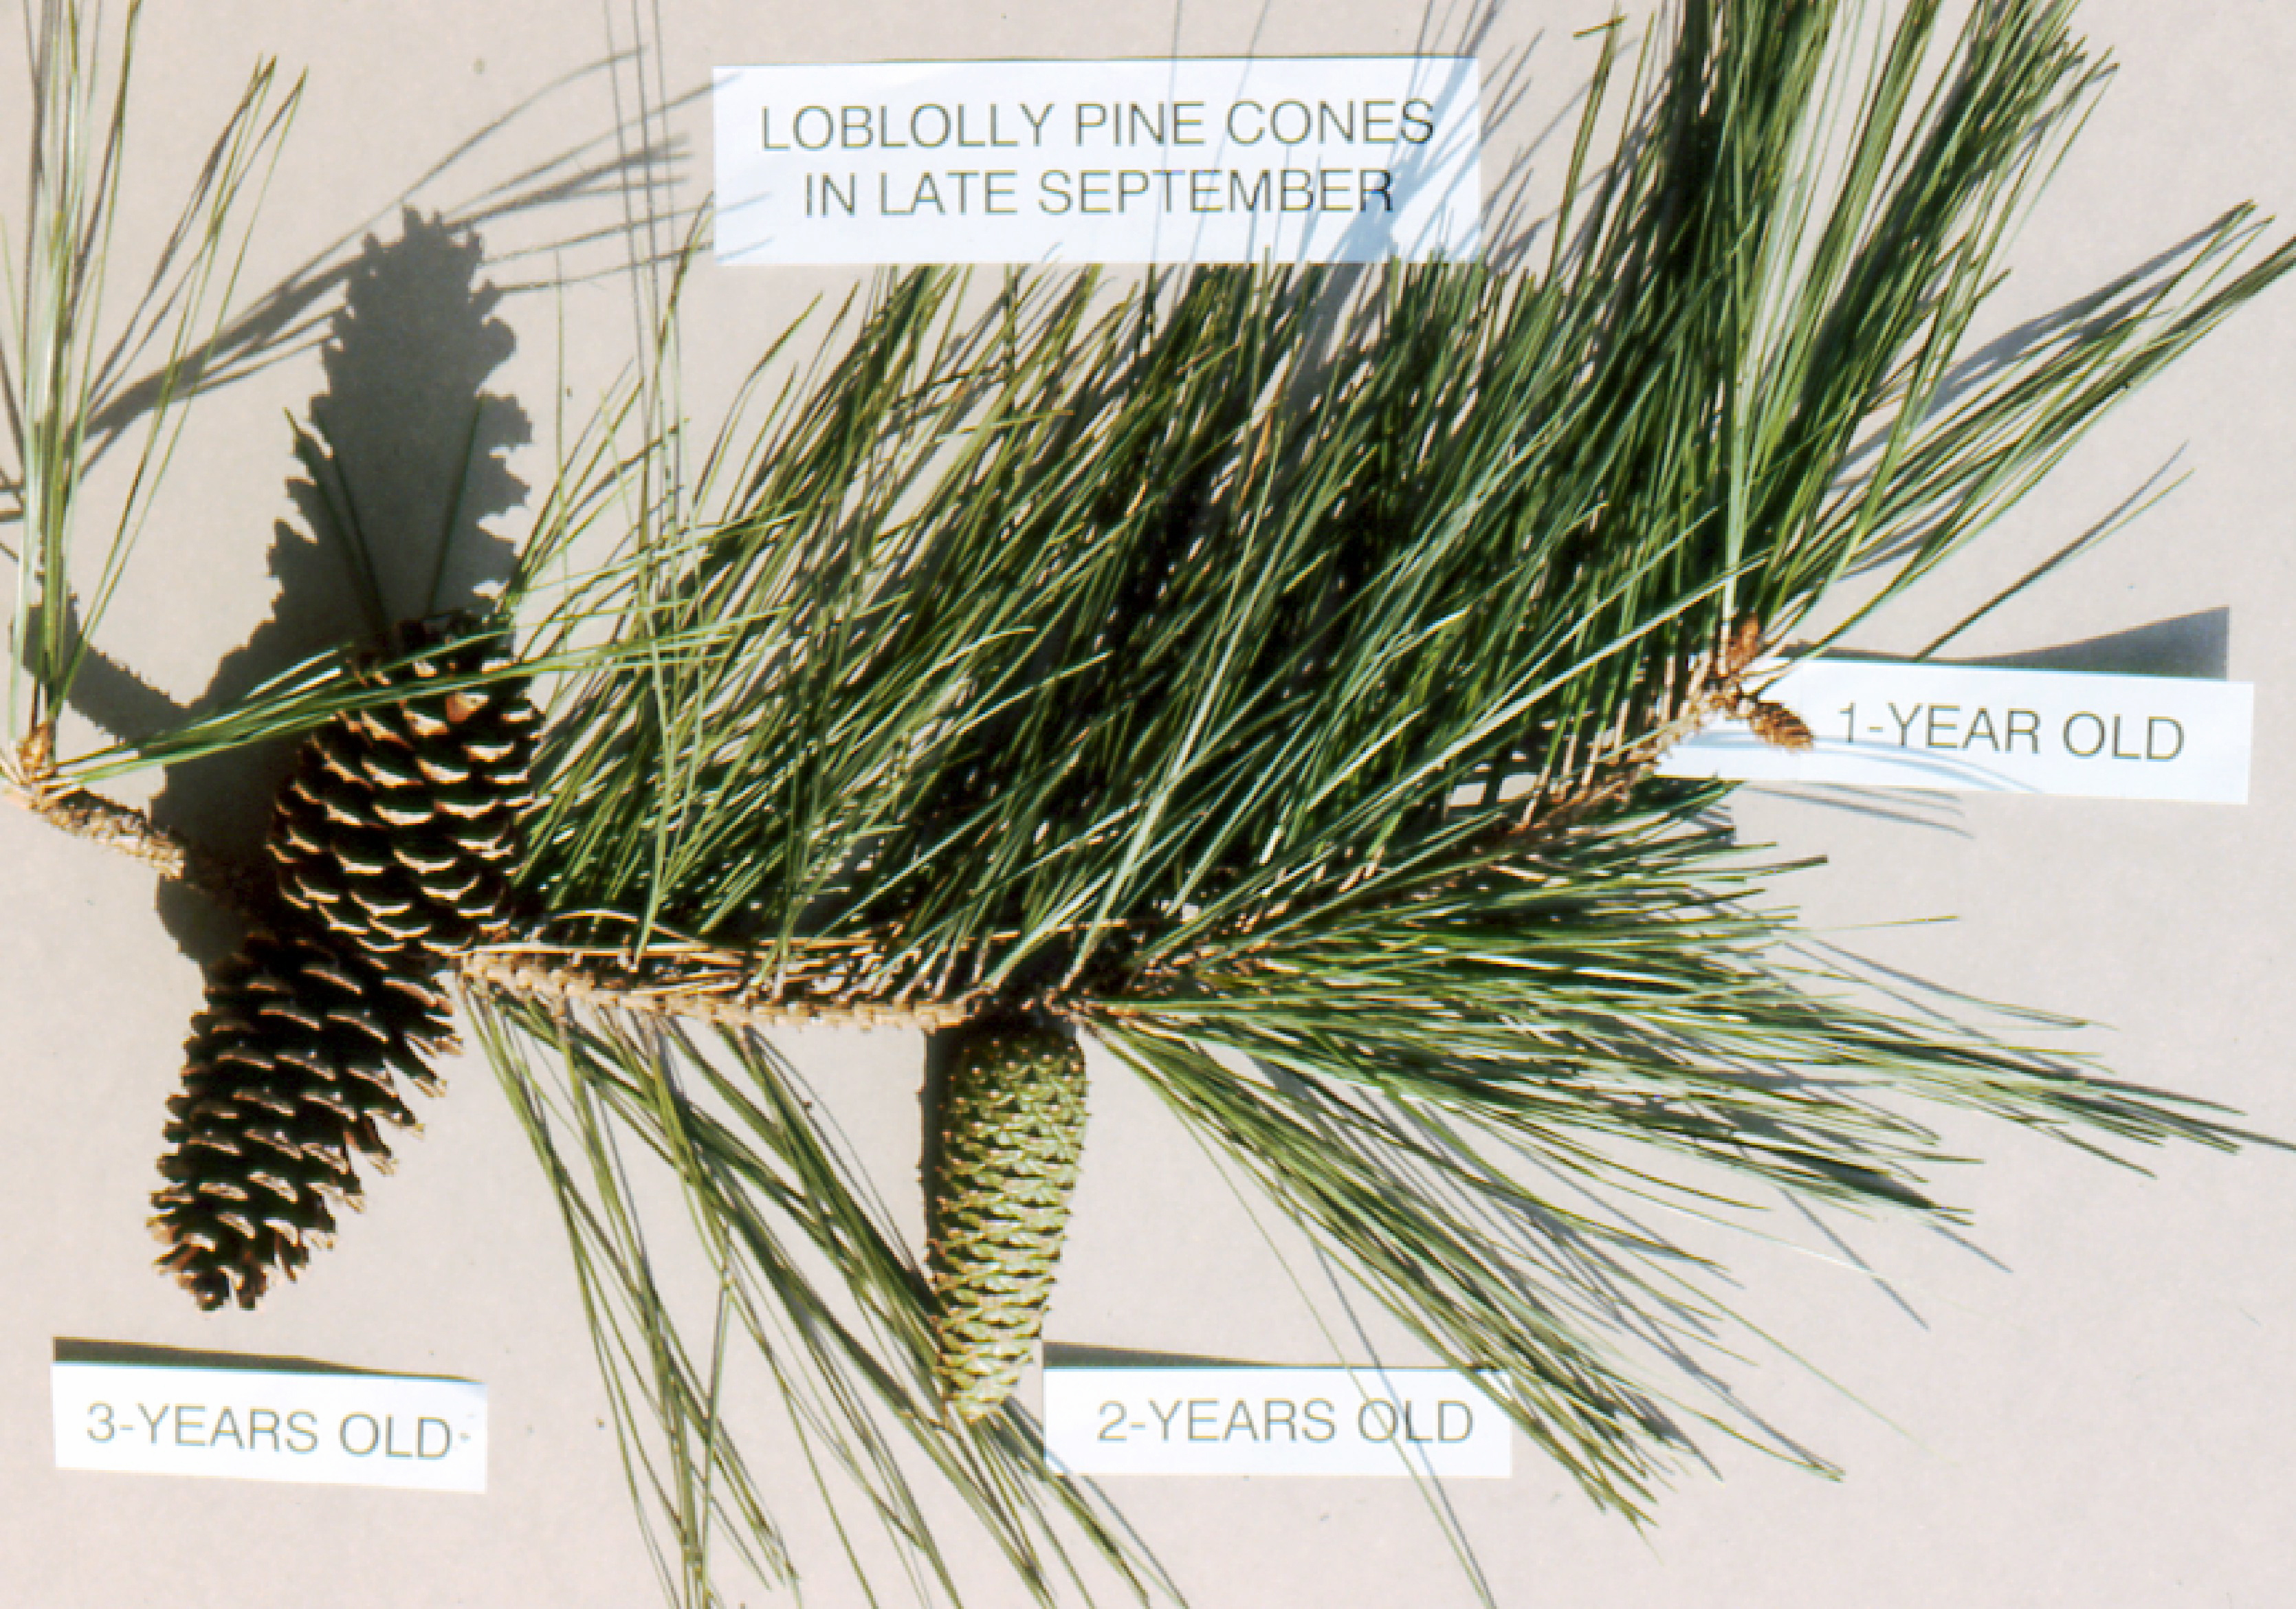 File:Ages of pine cones.jpg - Wikipedia, the free encyclopedia